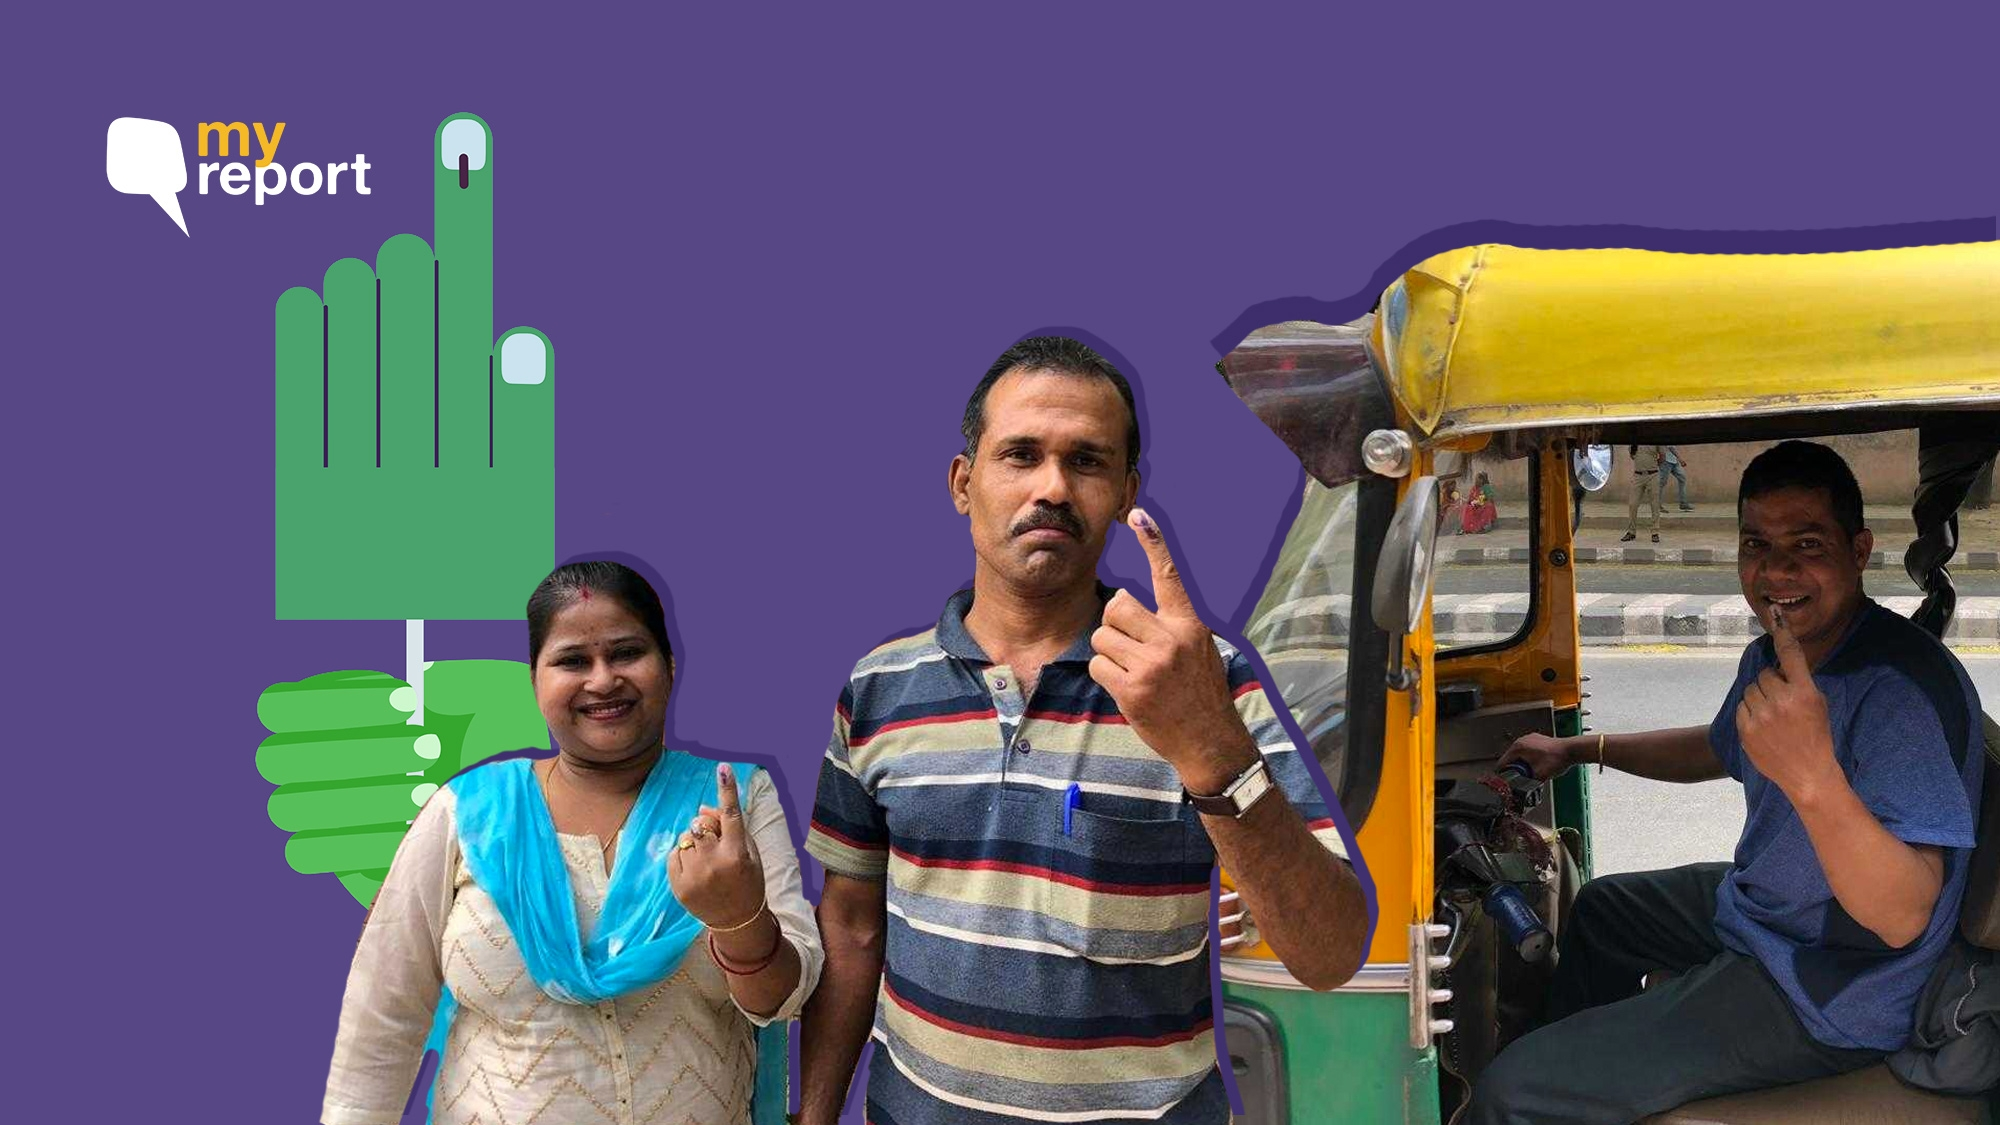 With Sixth Phase of Voting Underway, Delhiites Share Their Inkfies